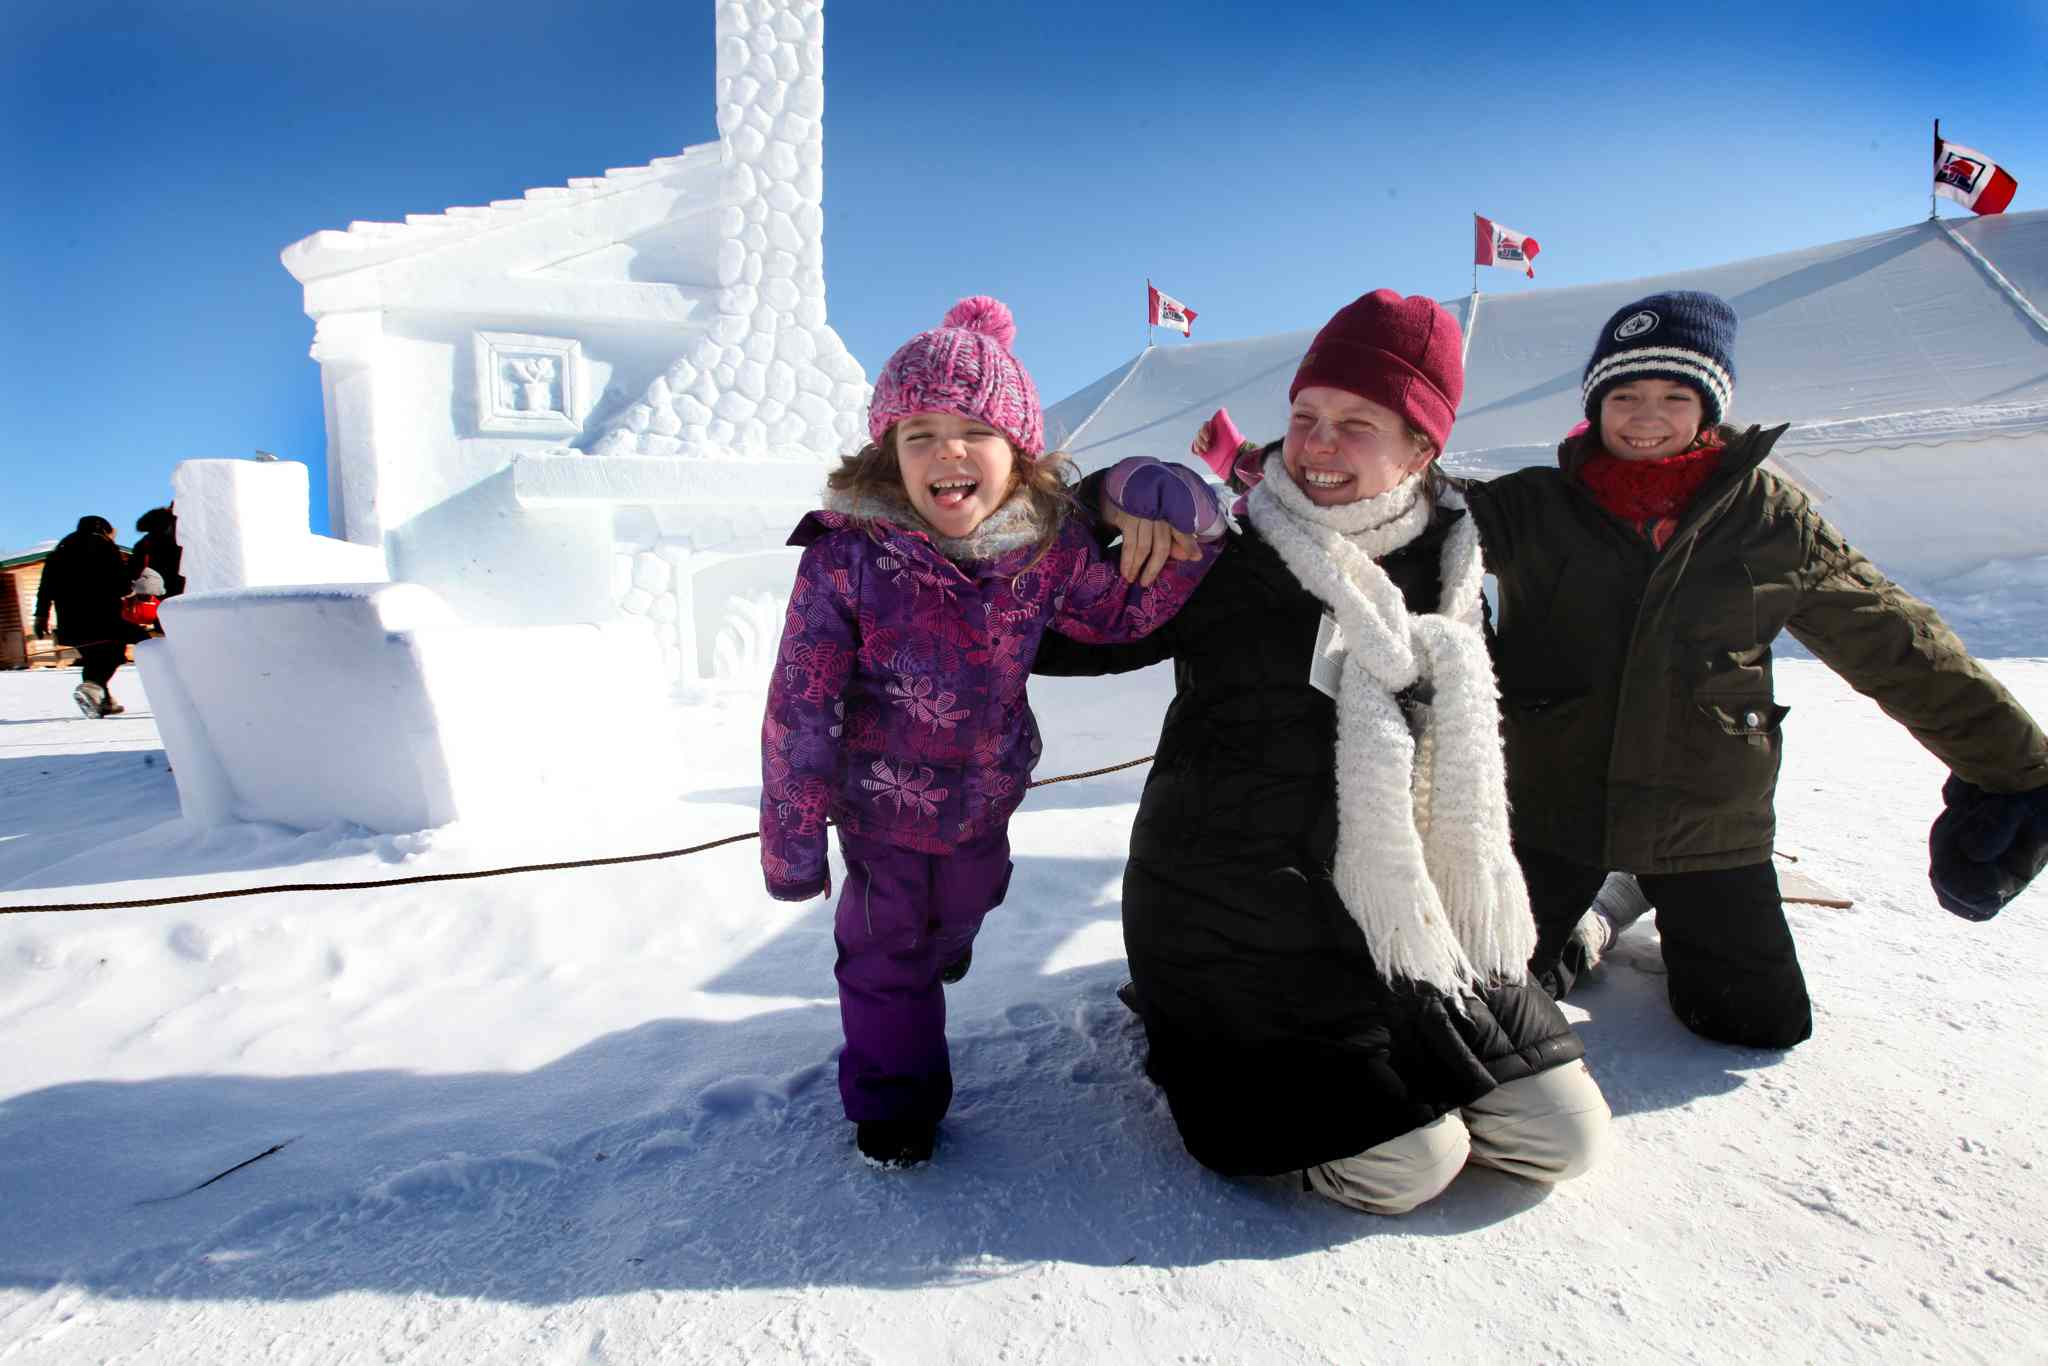 5-year-old Monica Claire, her mom Elizabeth Whitaker-Jacques and her niece Tianna Govia,11yrs (on right), goof around one of their favourite snow sculptures at the Festival du Voyageur Saturday afternoon.